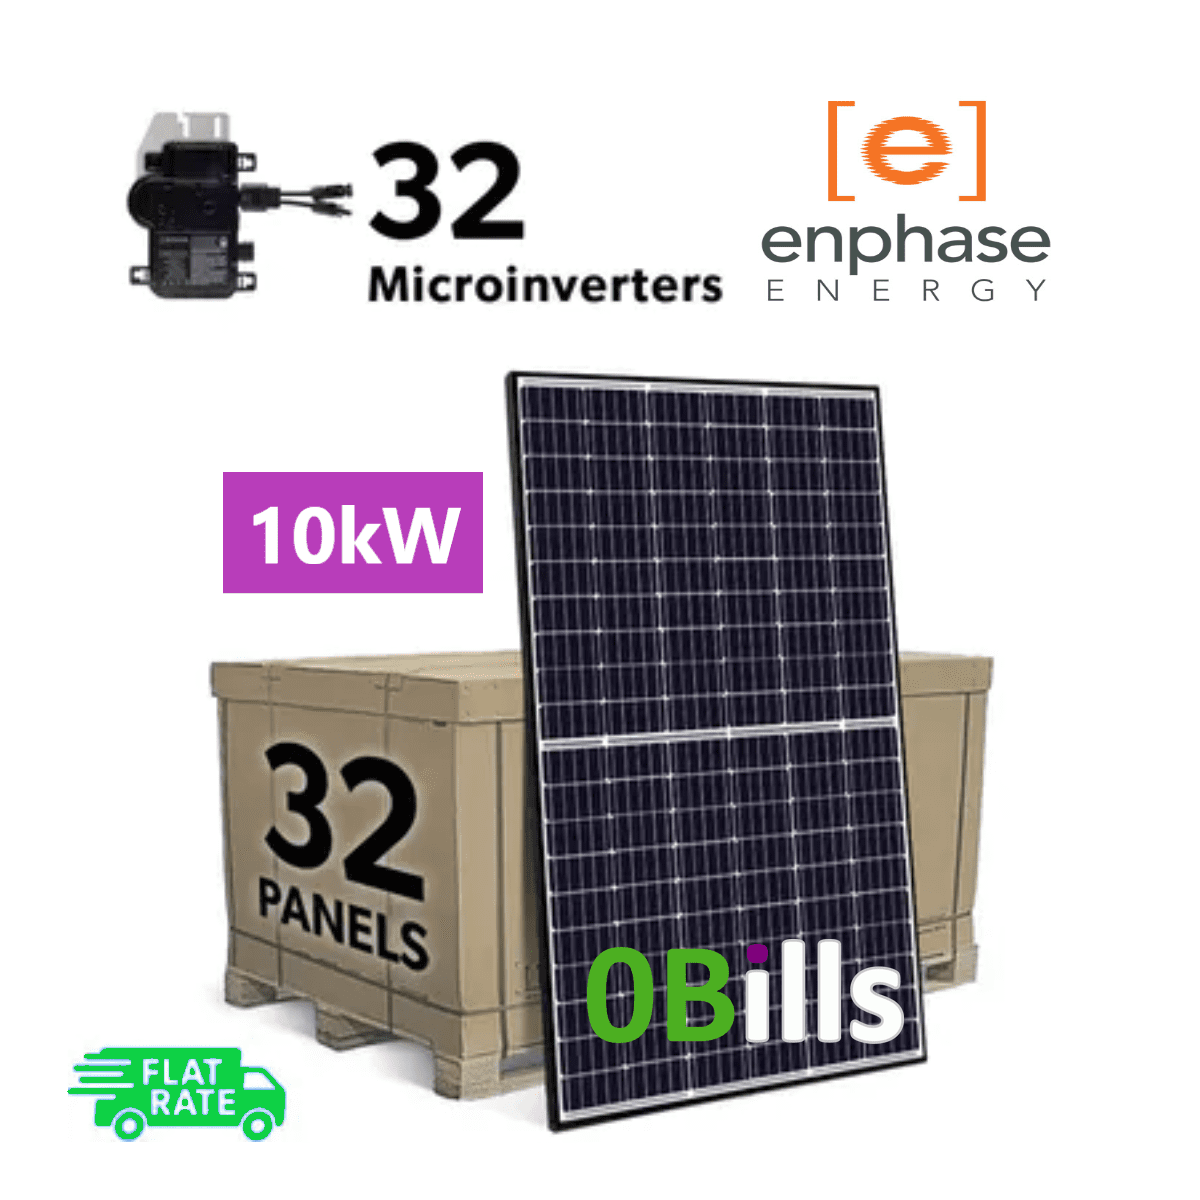 Complete Grid Tied 10kW DIY solar panel kit with Enphase IQ+ Microinverters